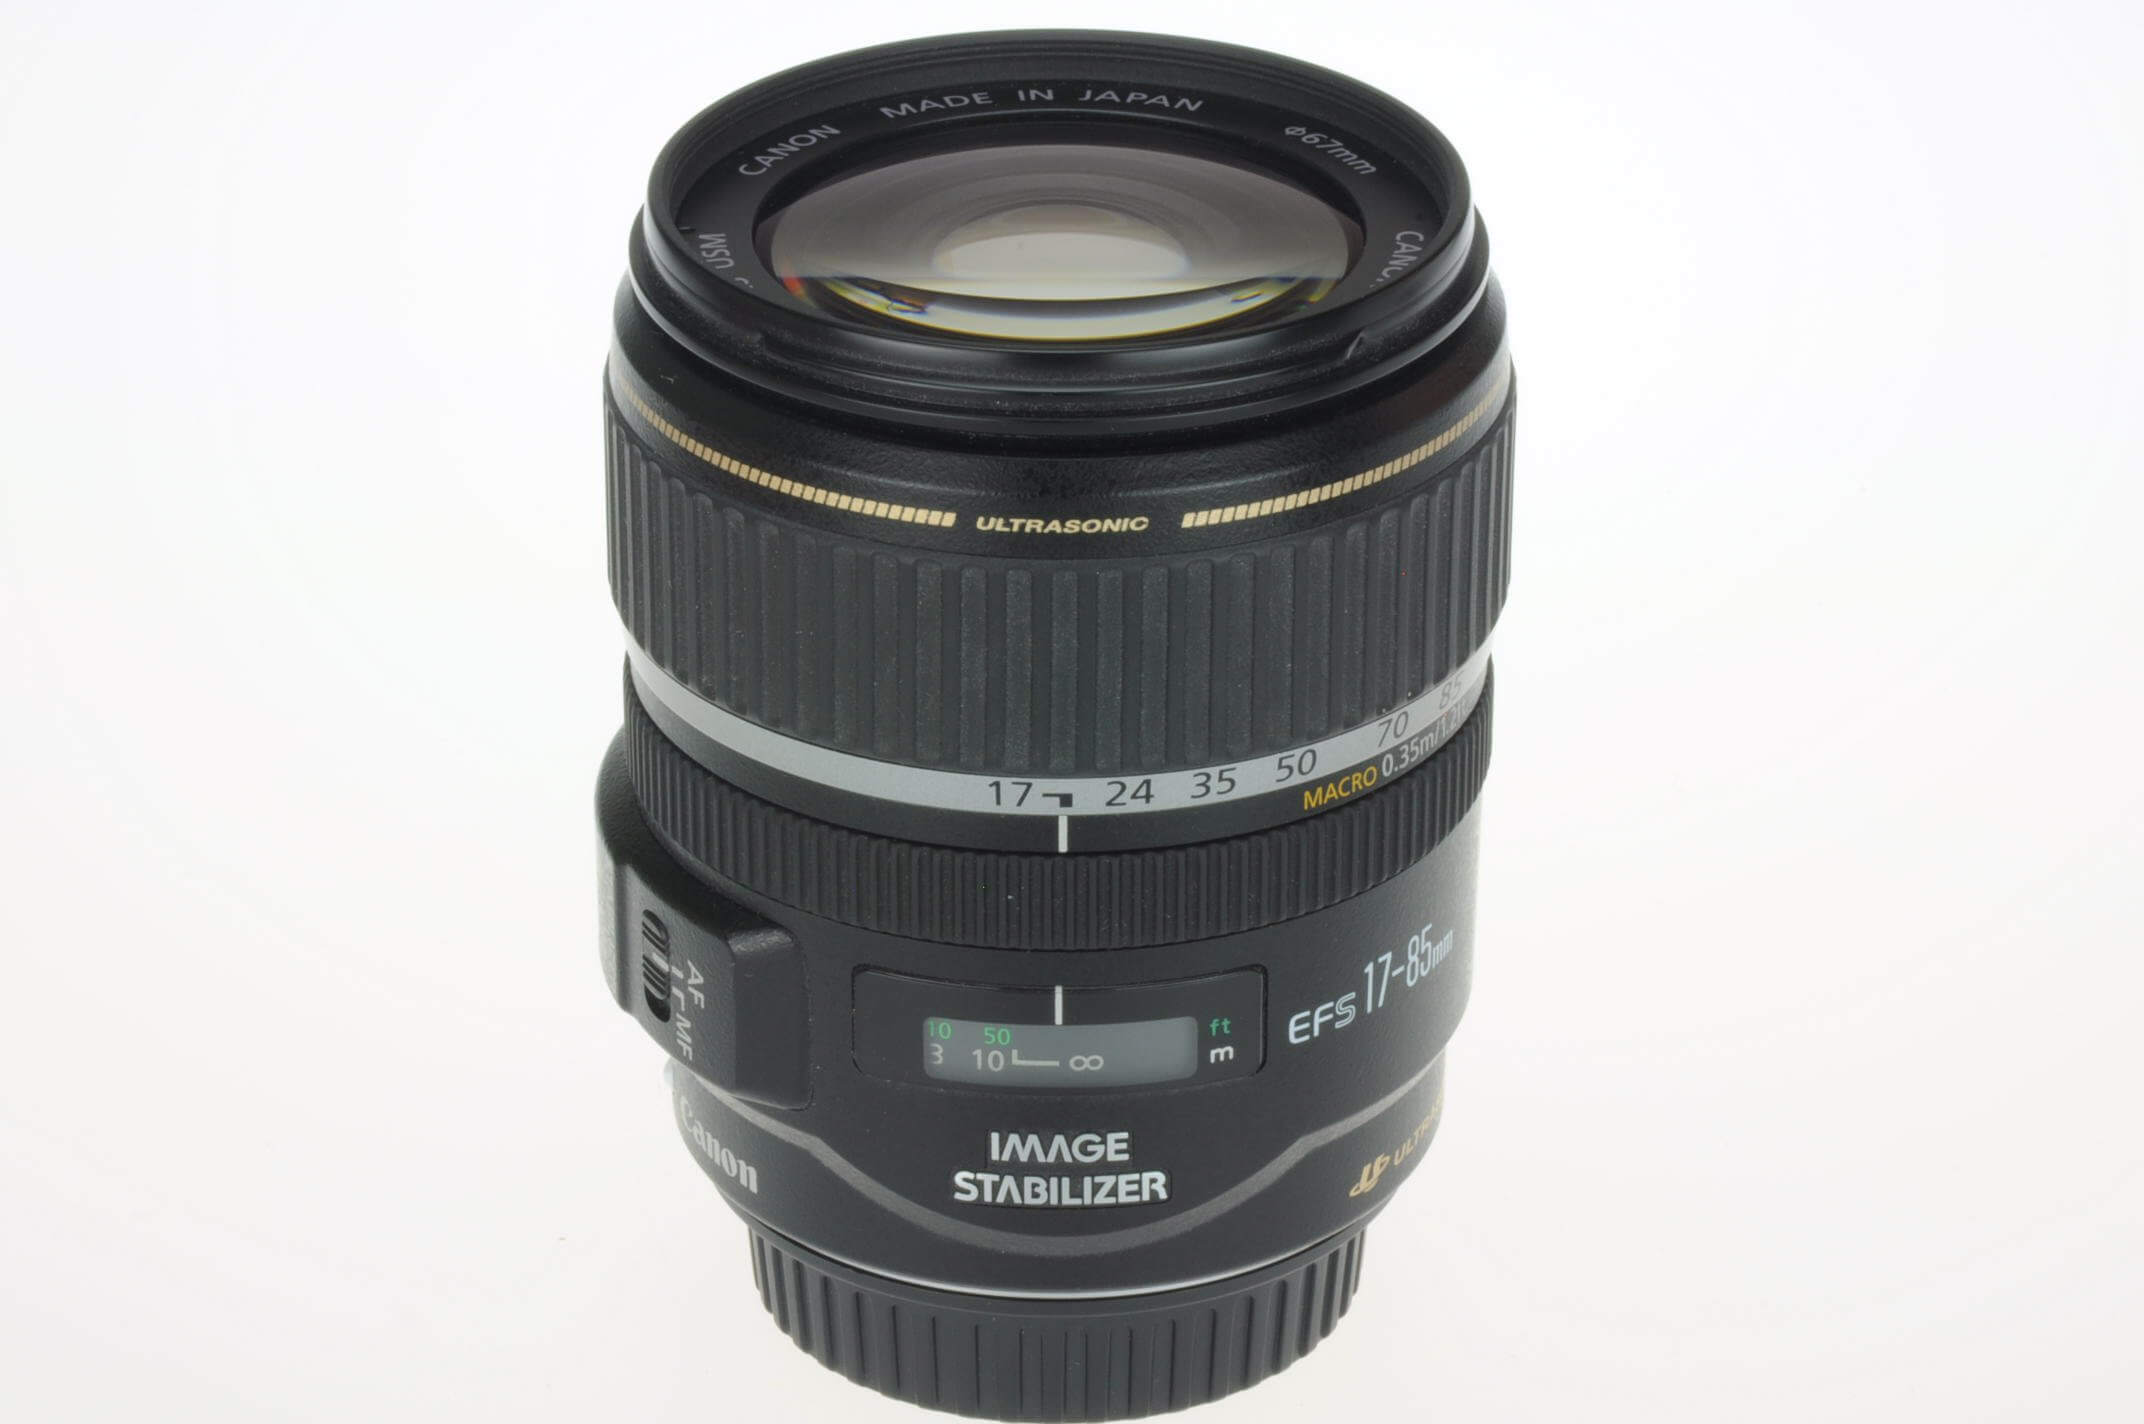 Canon 17-85 f4-5.6 EF-S IS USM lens, Mint condition!